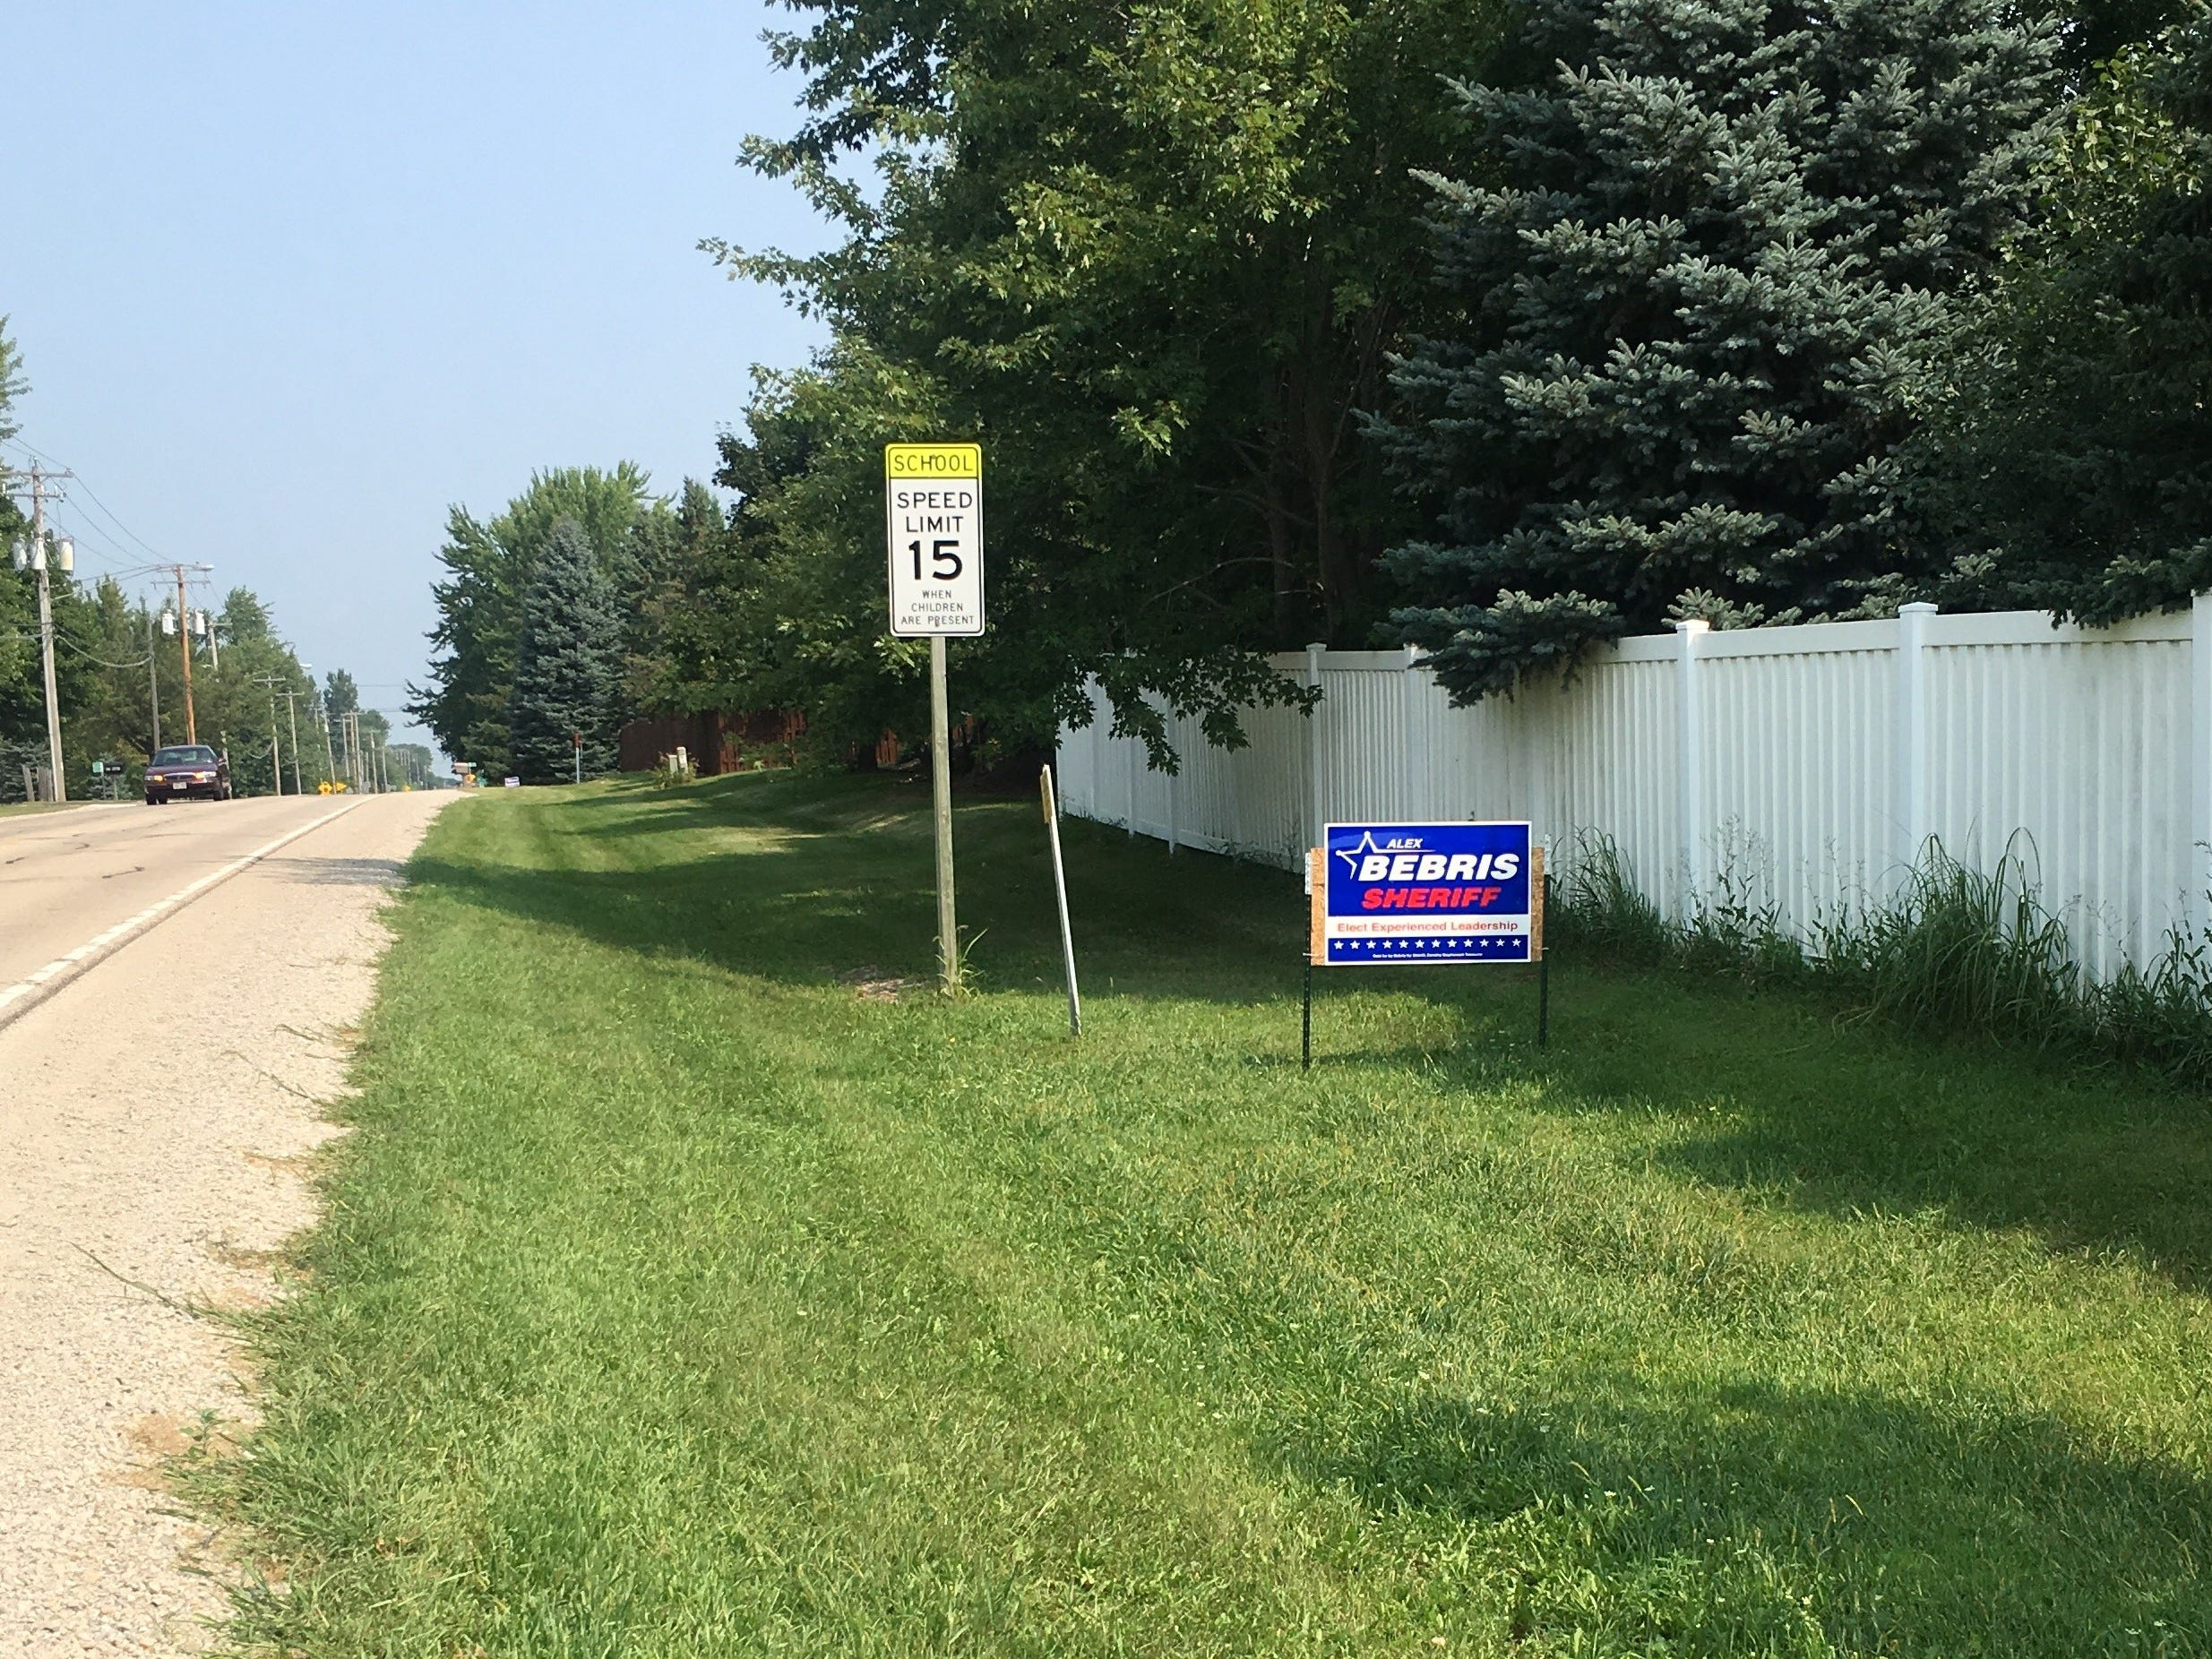 Election signs cannot be placed in the public right of way